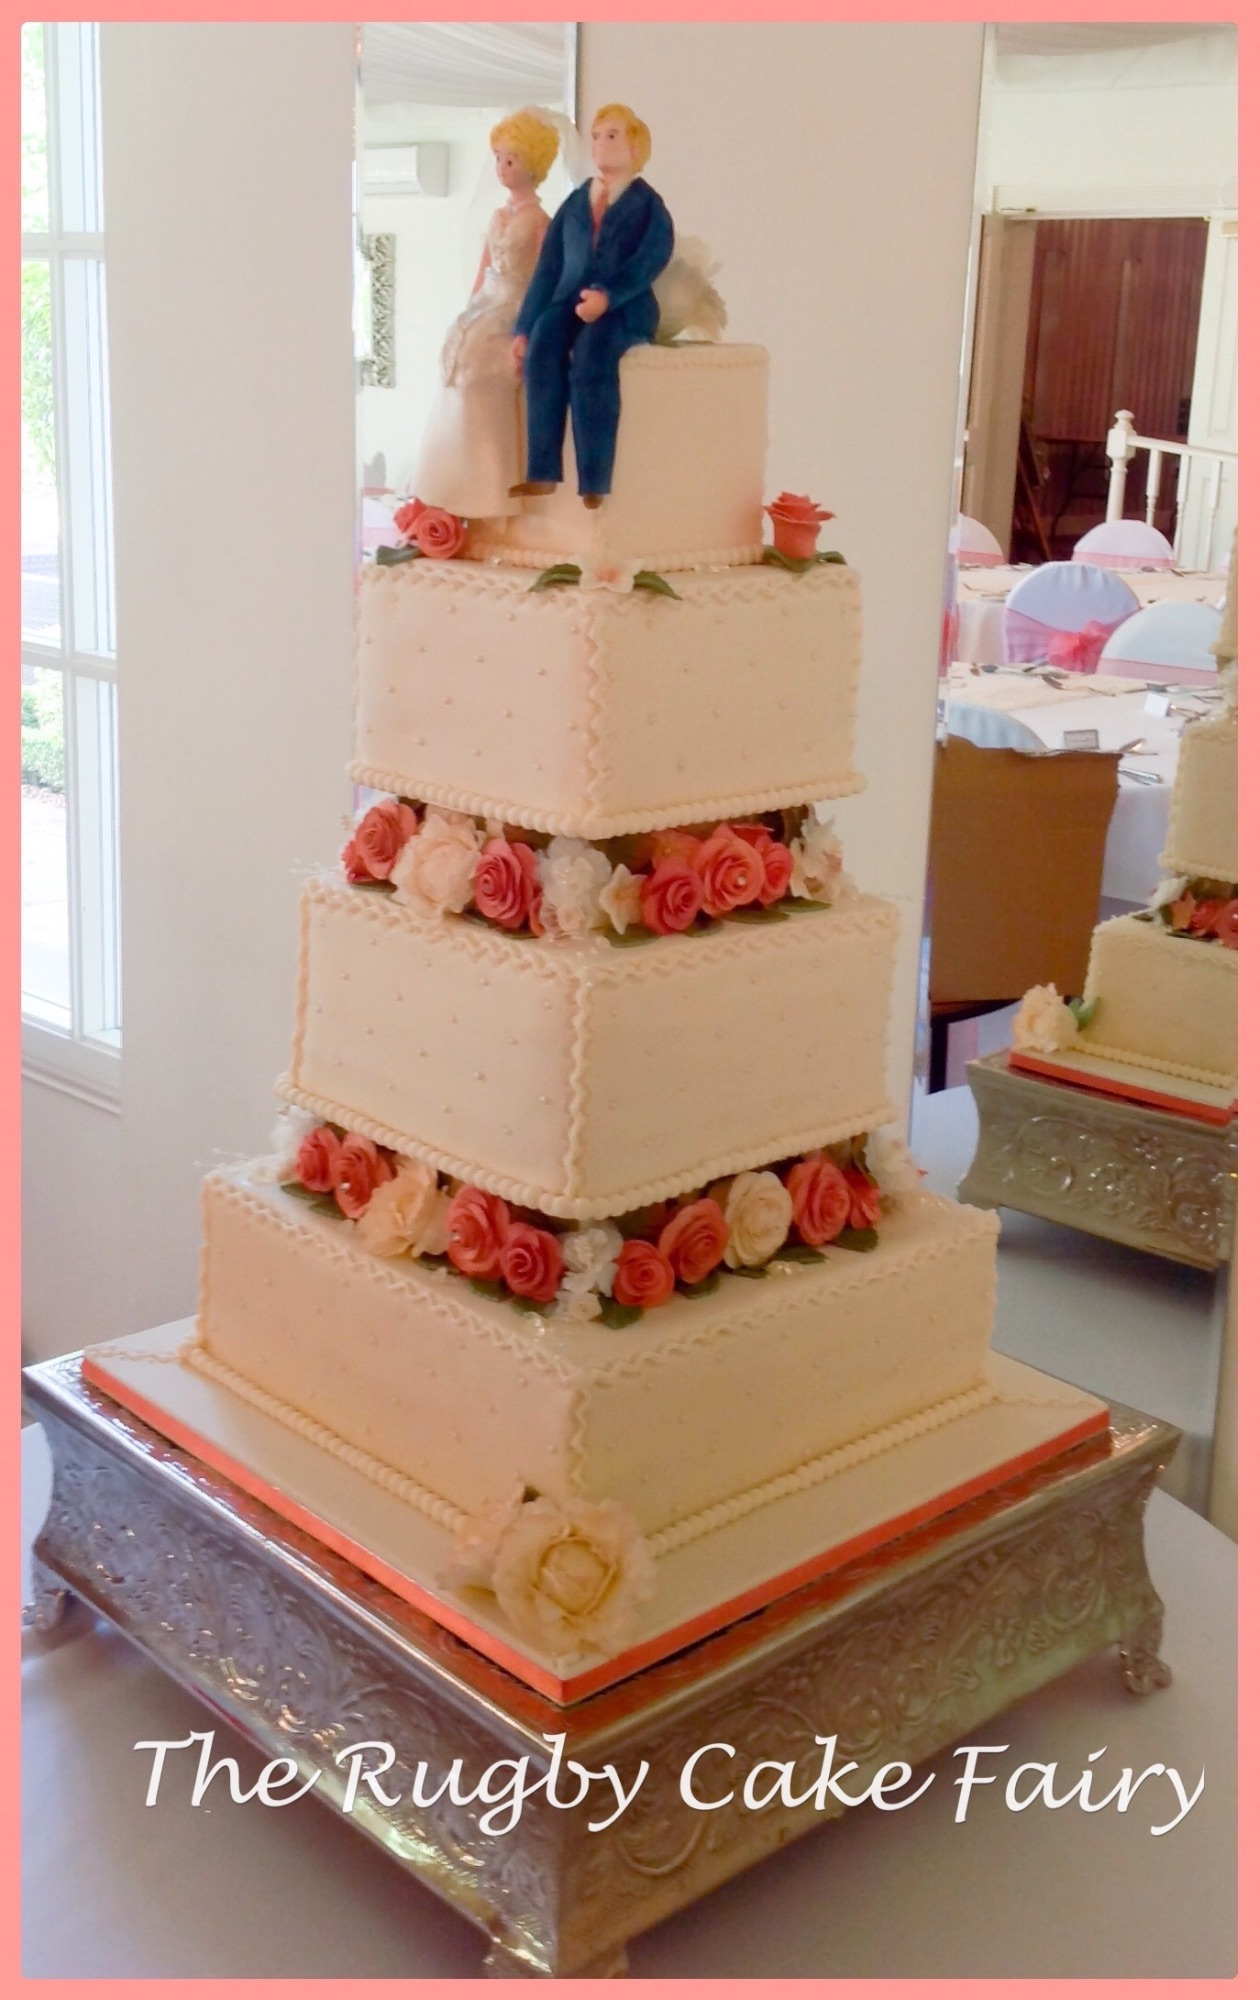 shell pink rose wedding cake side view